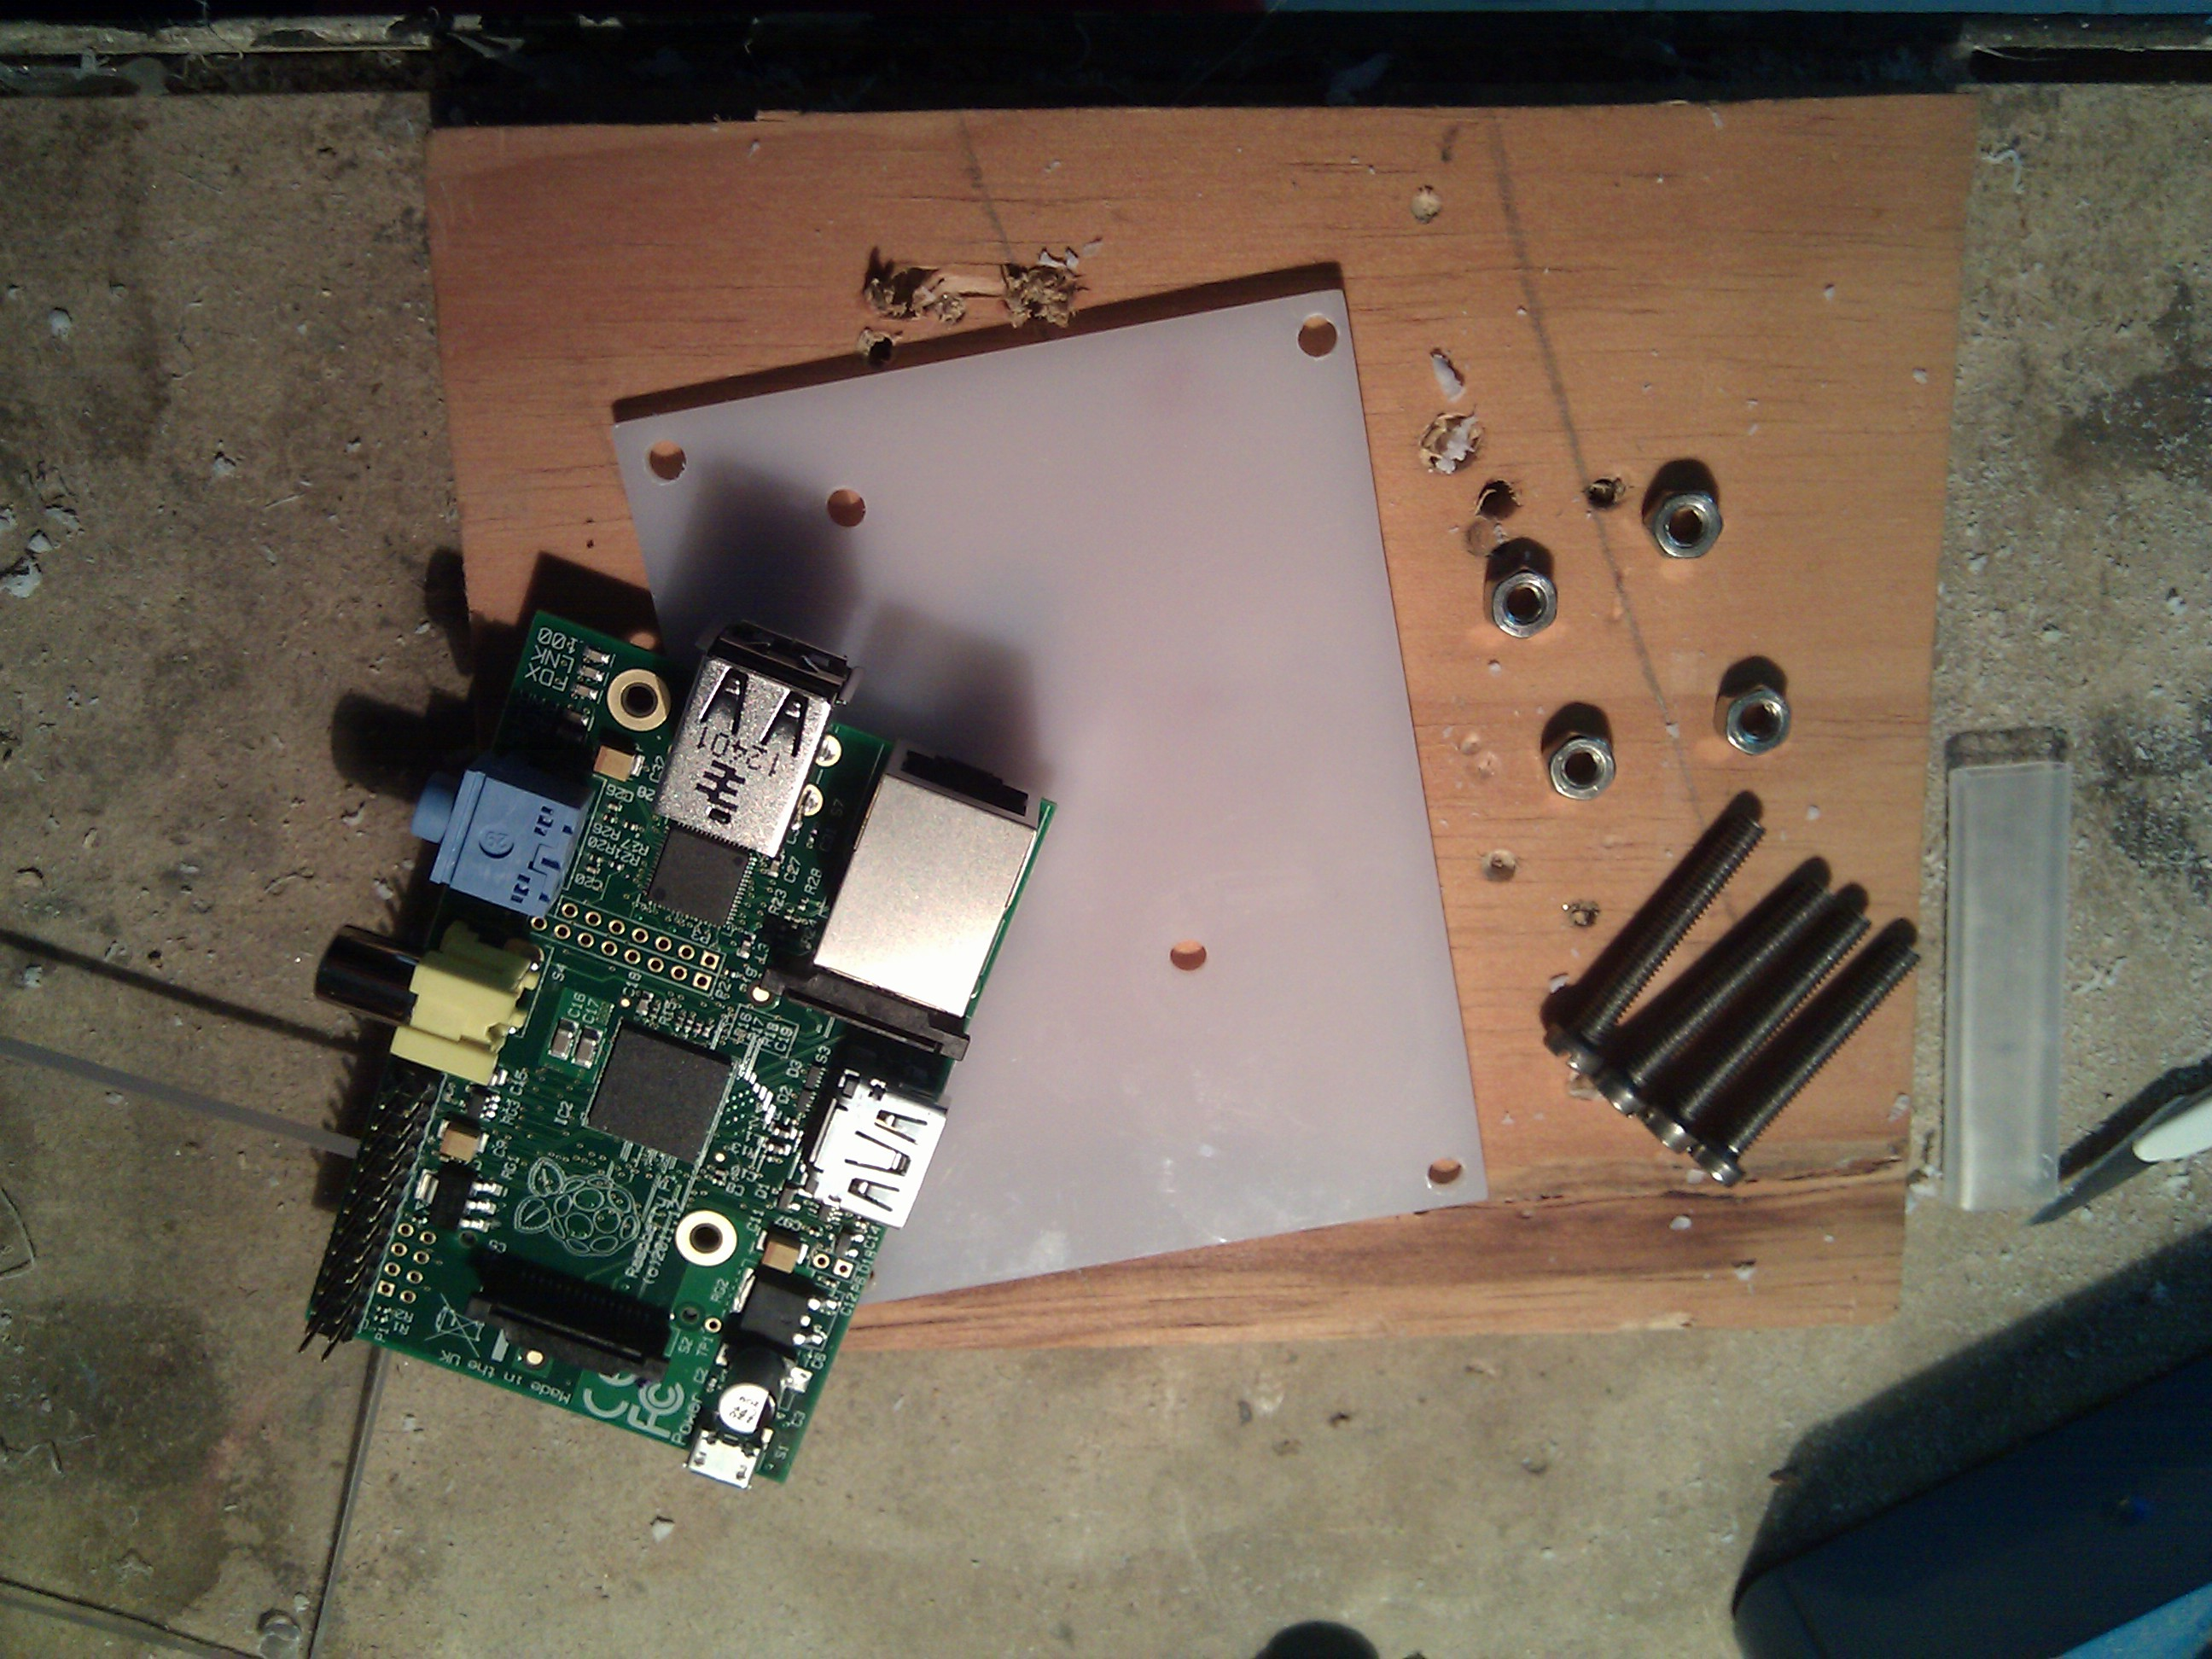 PVCCase: raspi+screws+pvc